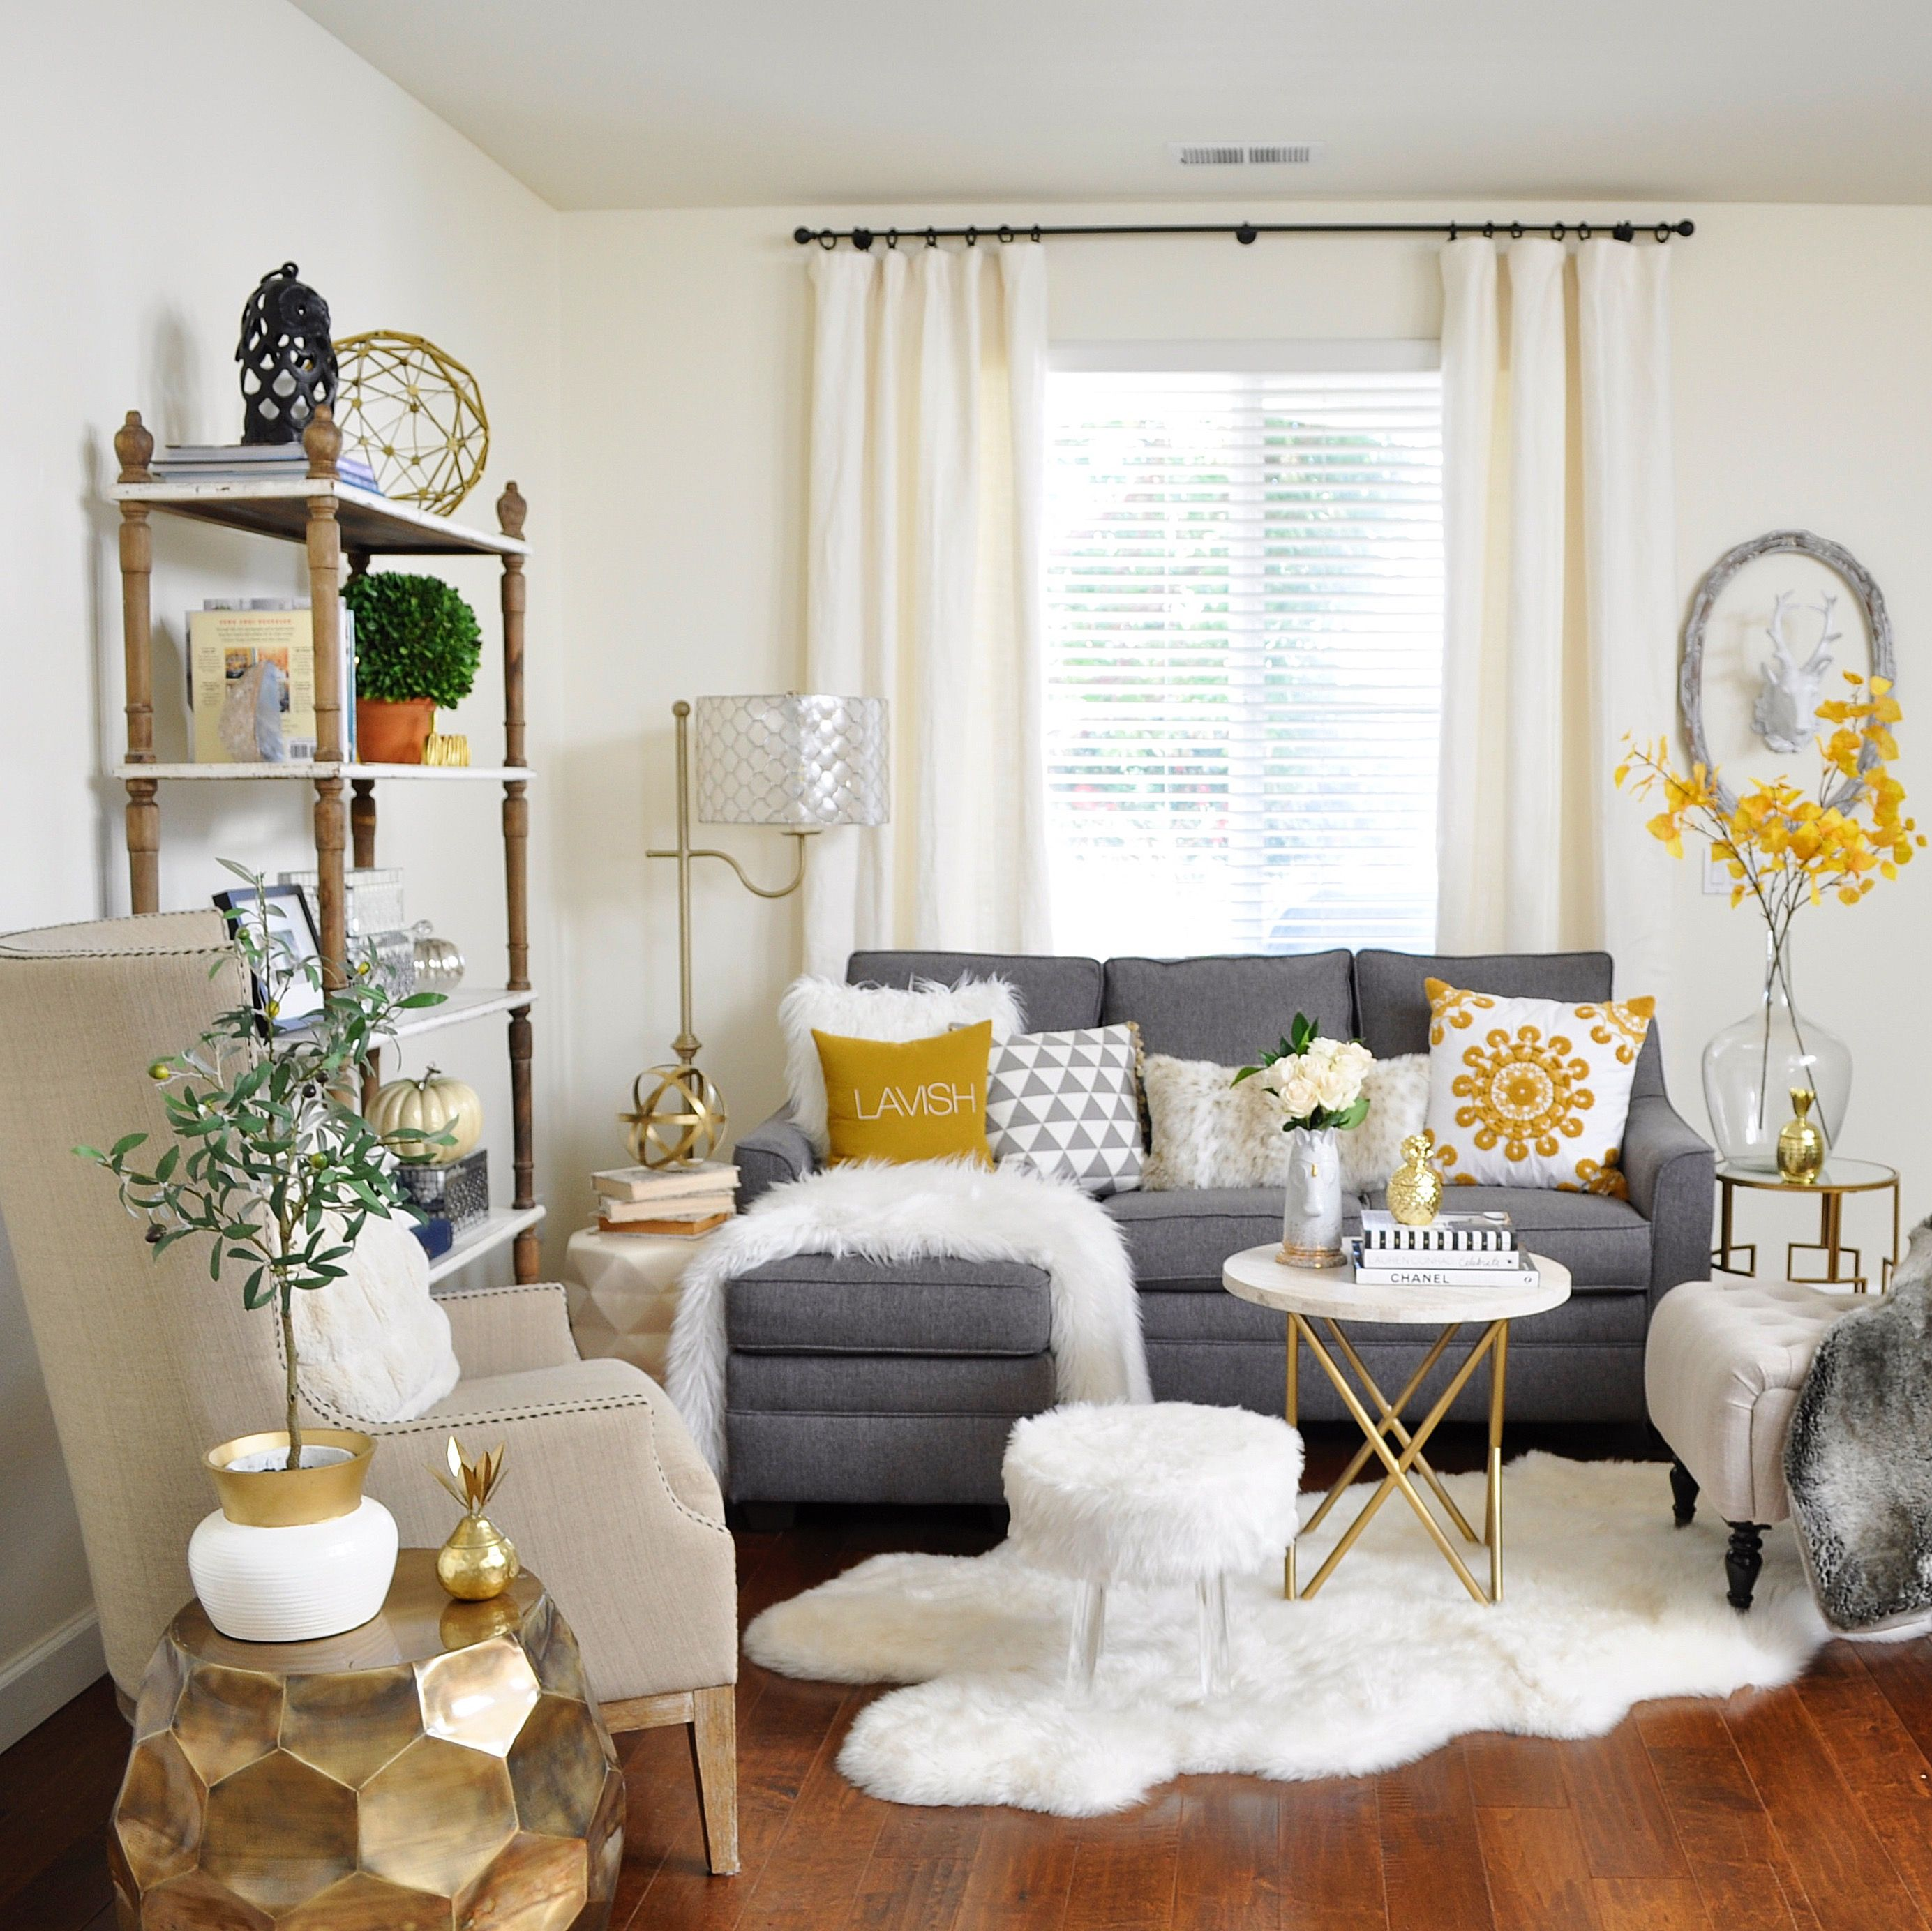 Mustard Accessories For Living Room How To Transition Into Fall Decor Ana Arredondo By